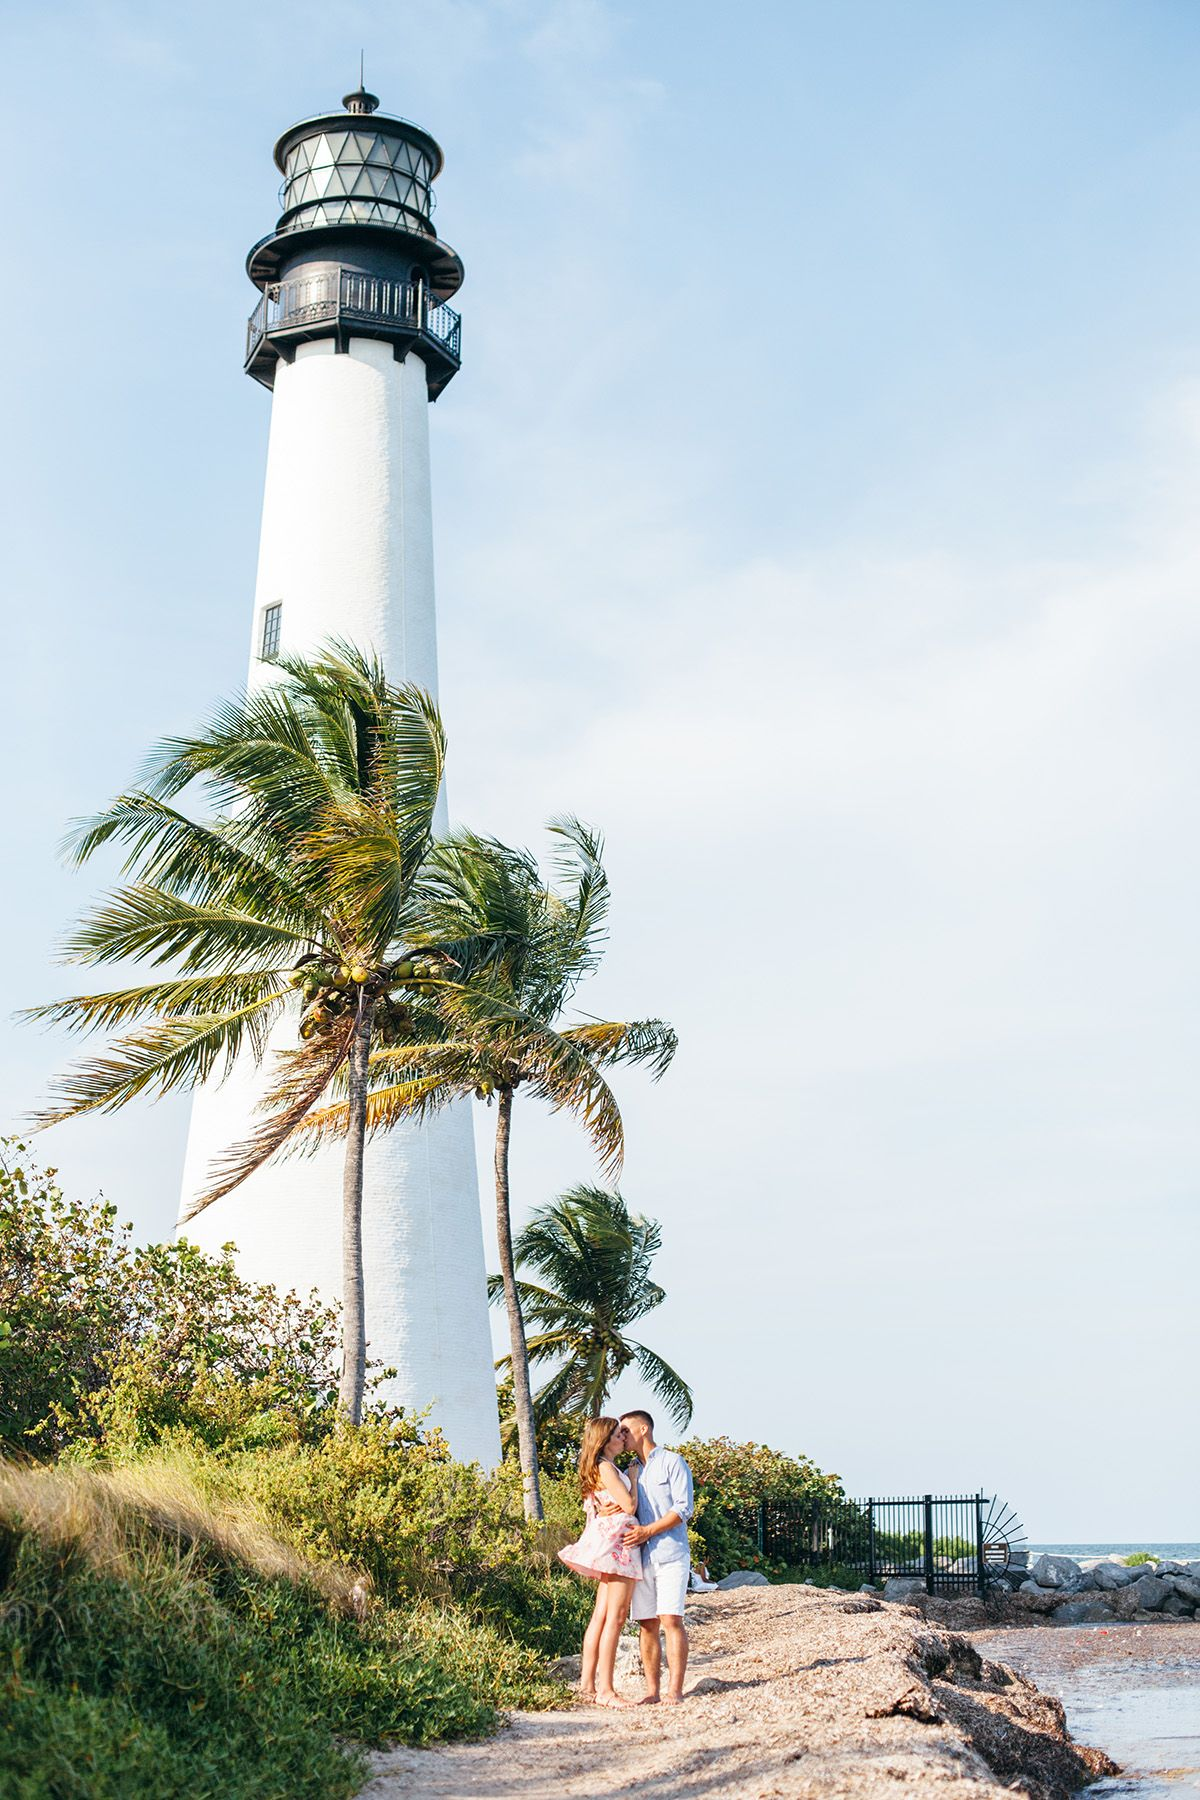 Key Biscayne Lighthouse Engagement Session Photo By Aleegleibermanphotography